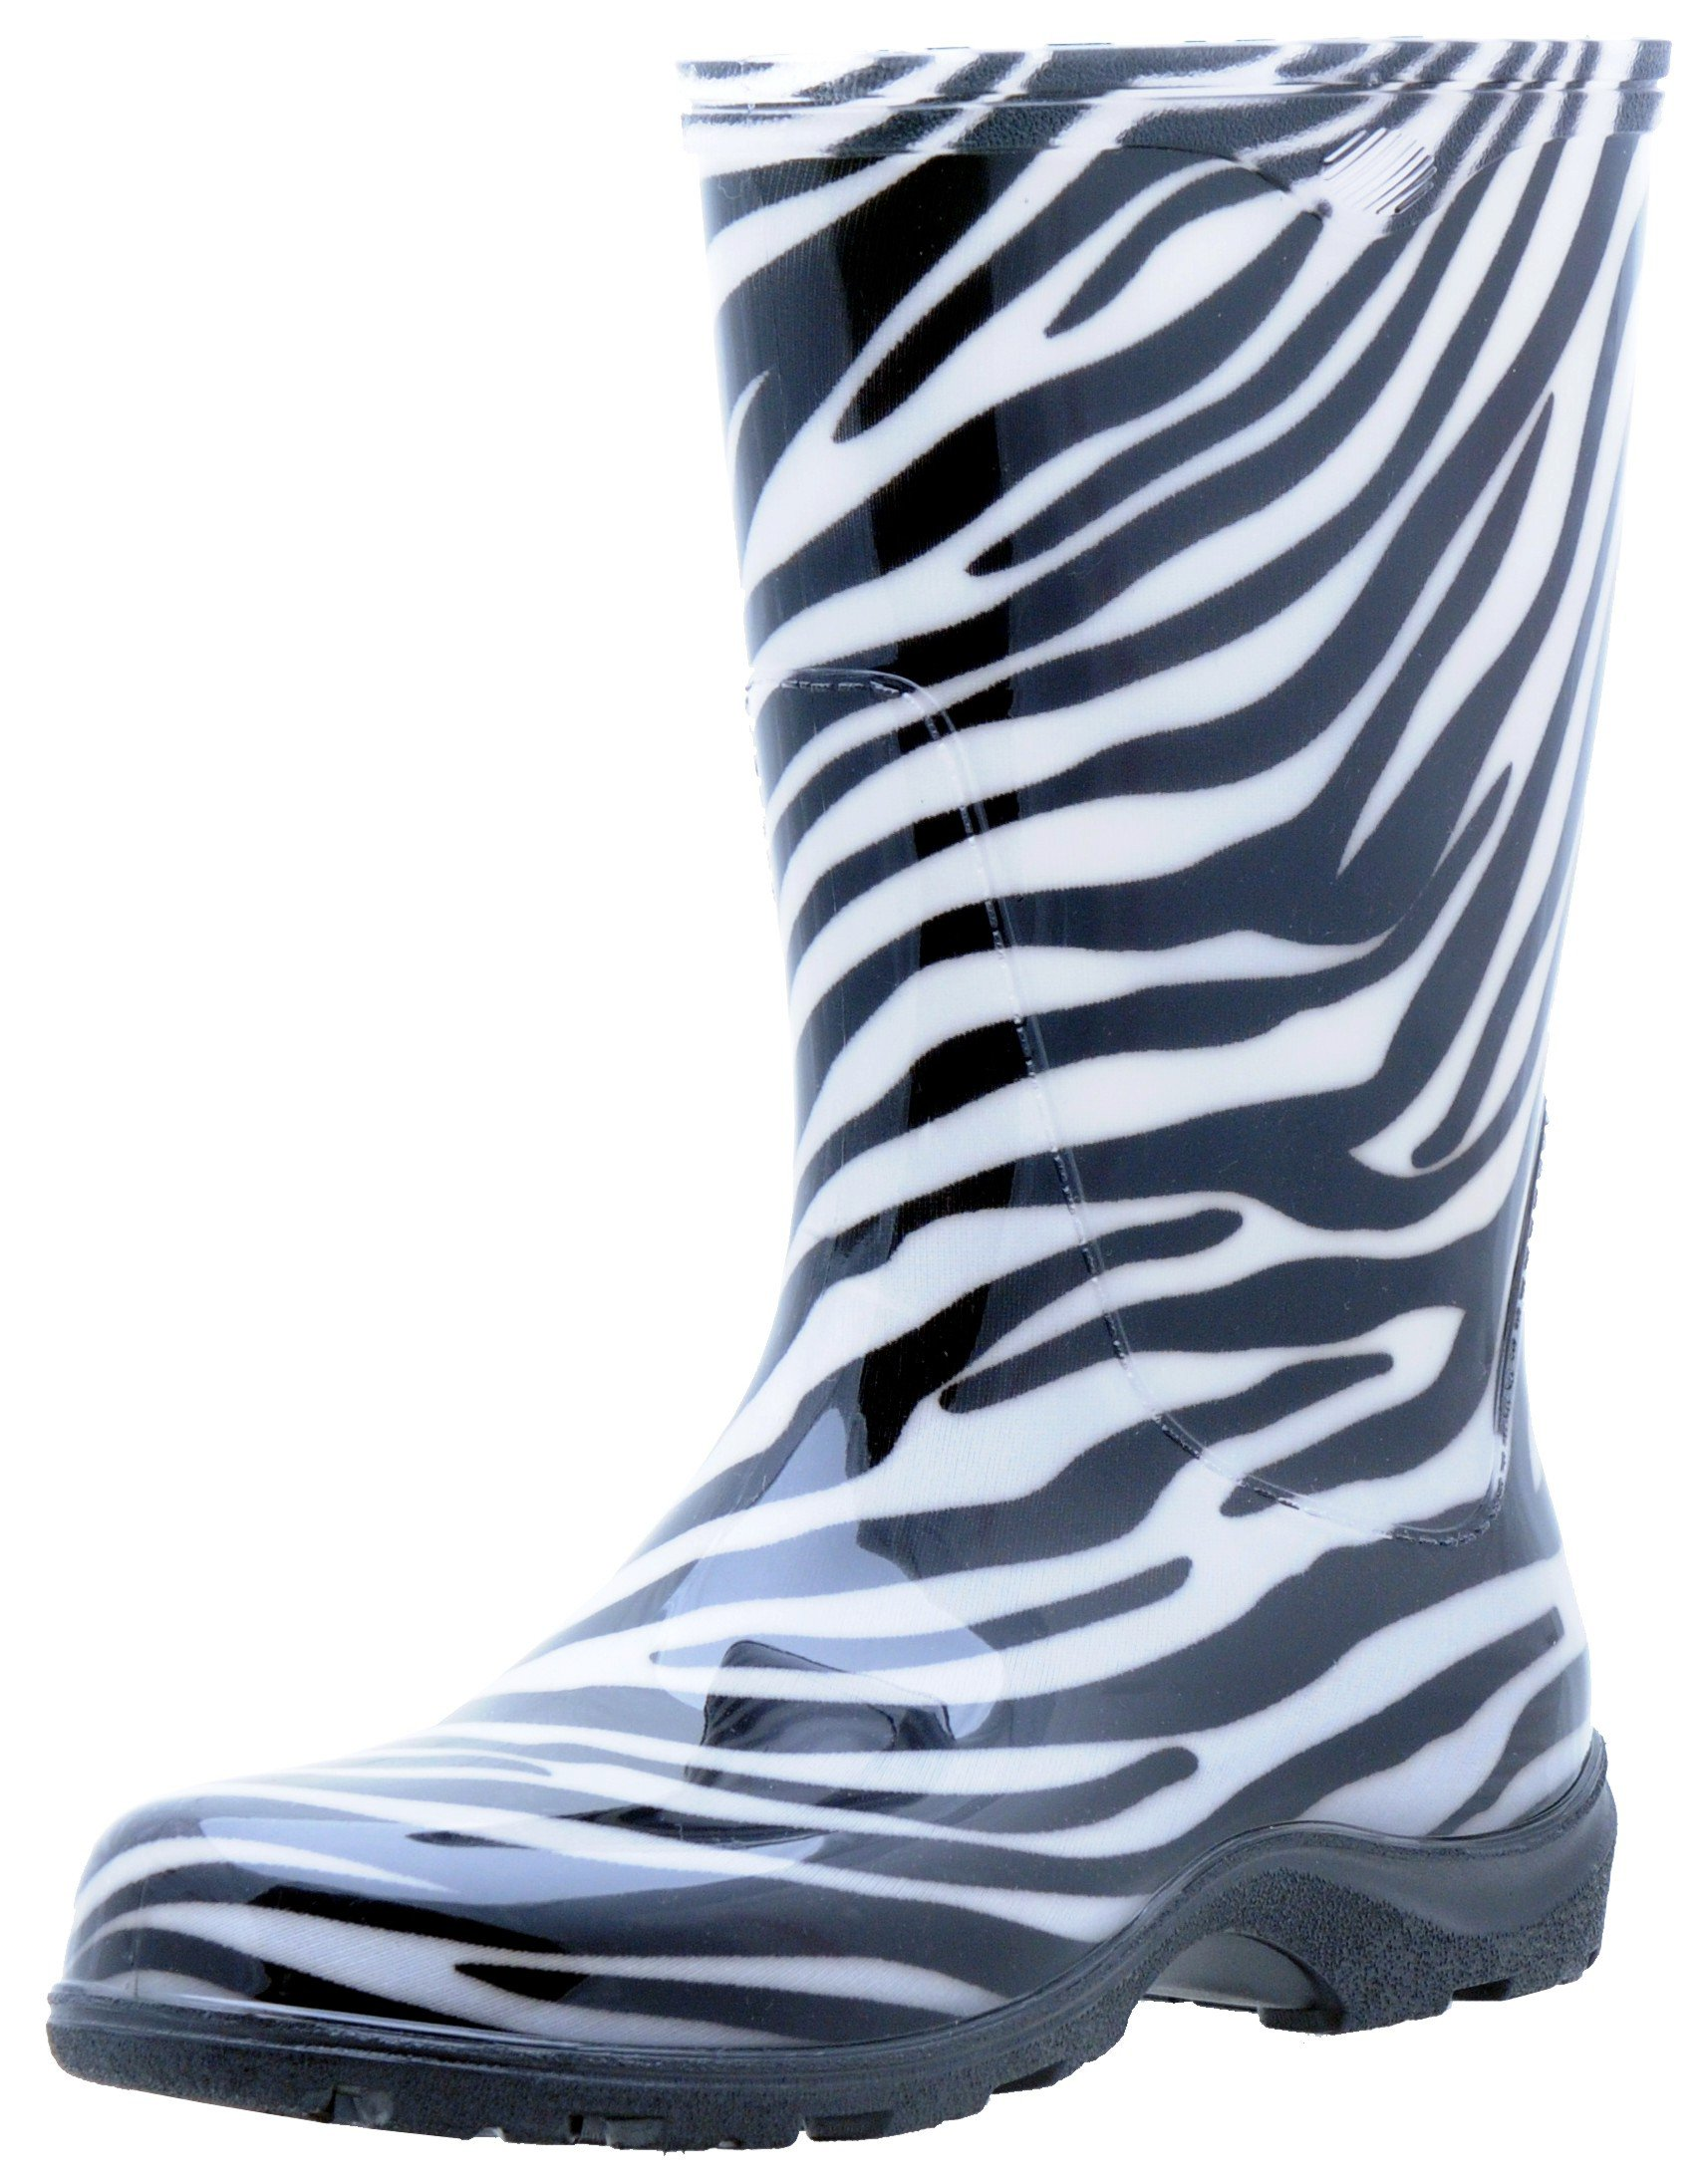 Sloggers Women's Rain and Garden Boot with All-Day-Comfort Insole, Zebra Print - Wo's size 8 - Style 5006ZE08